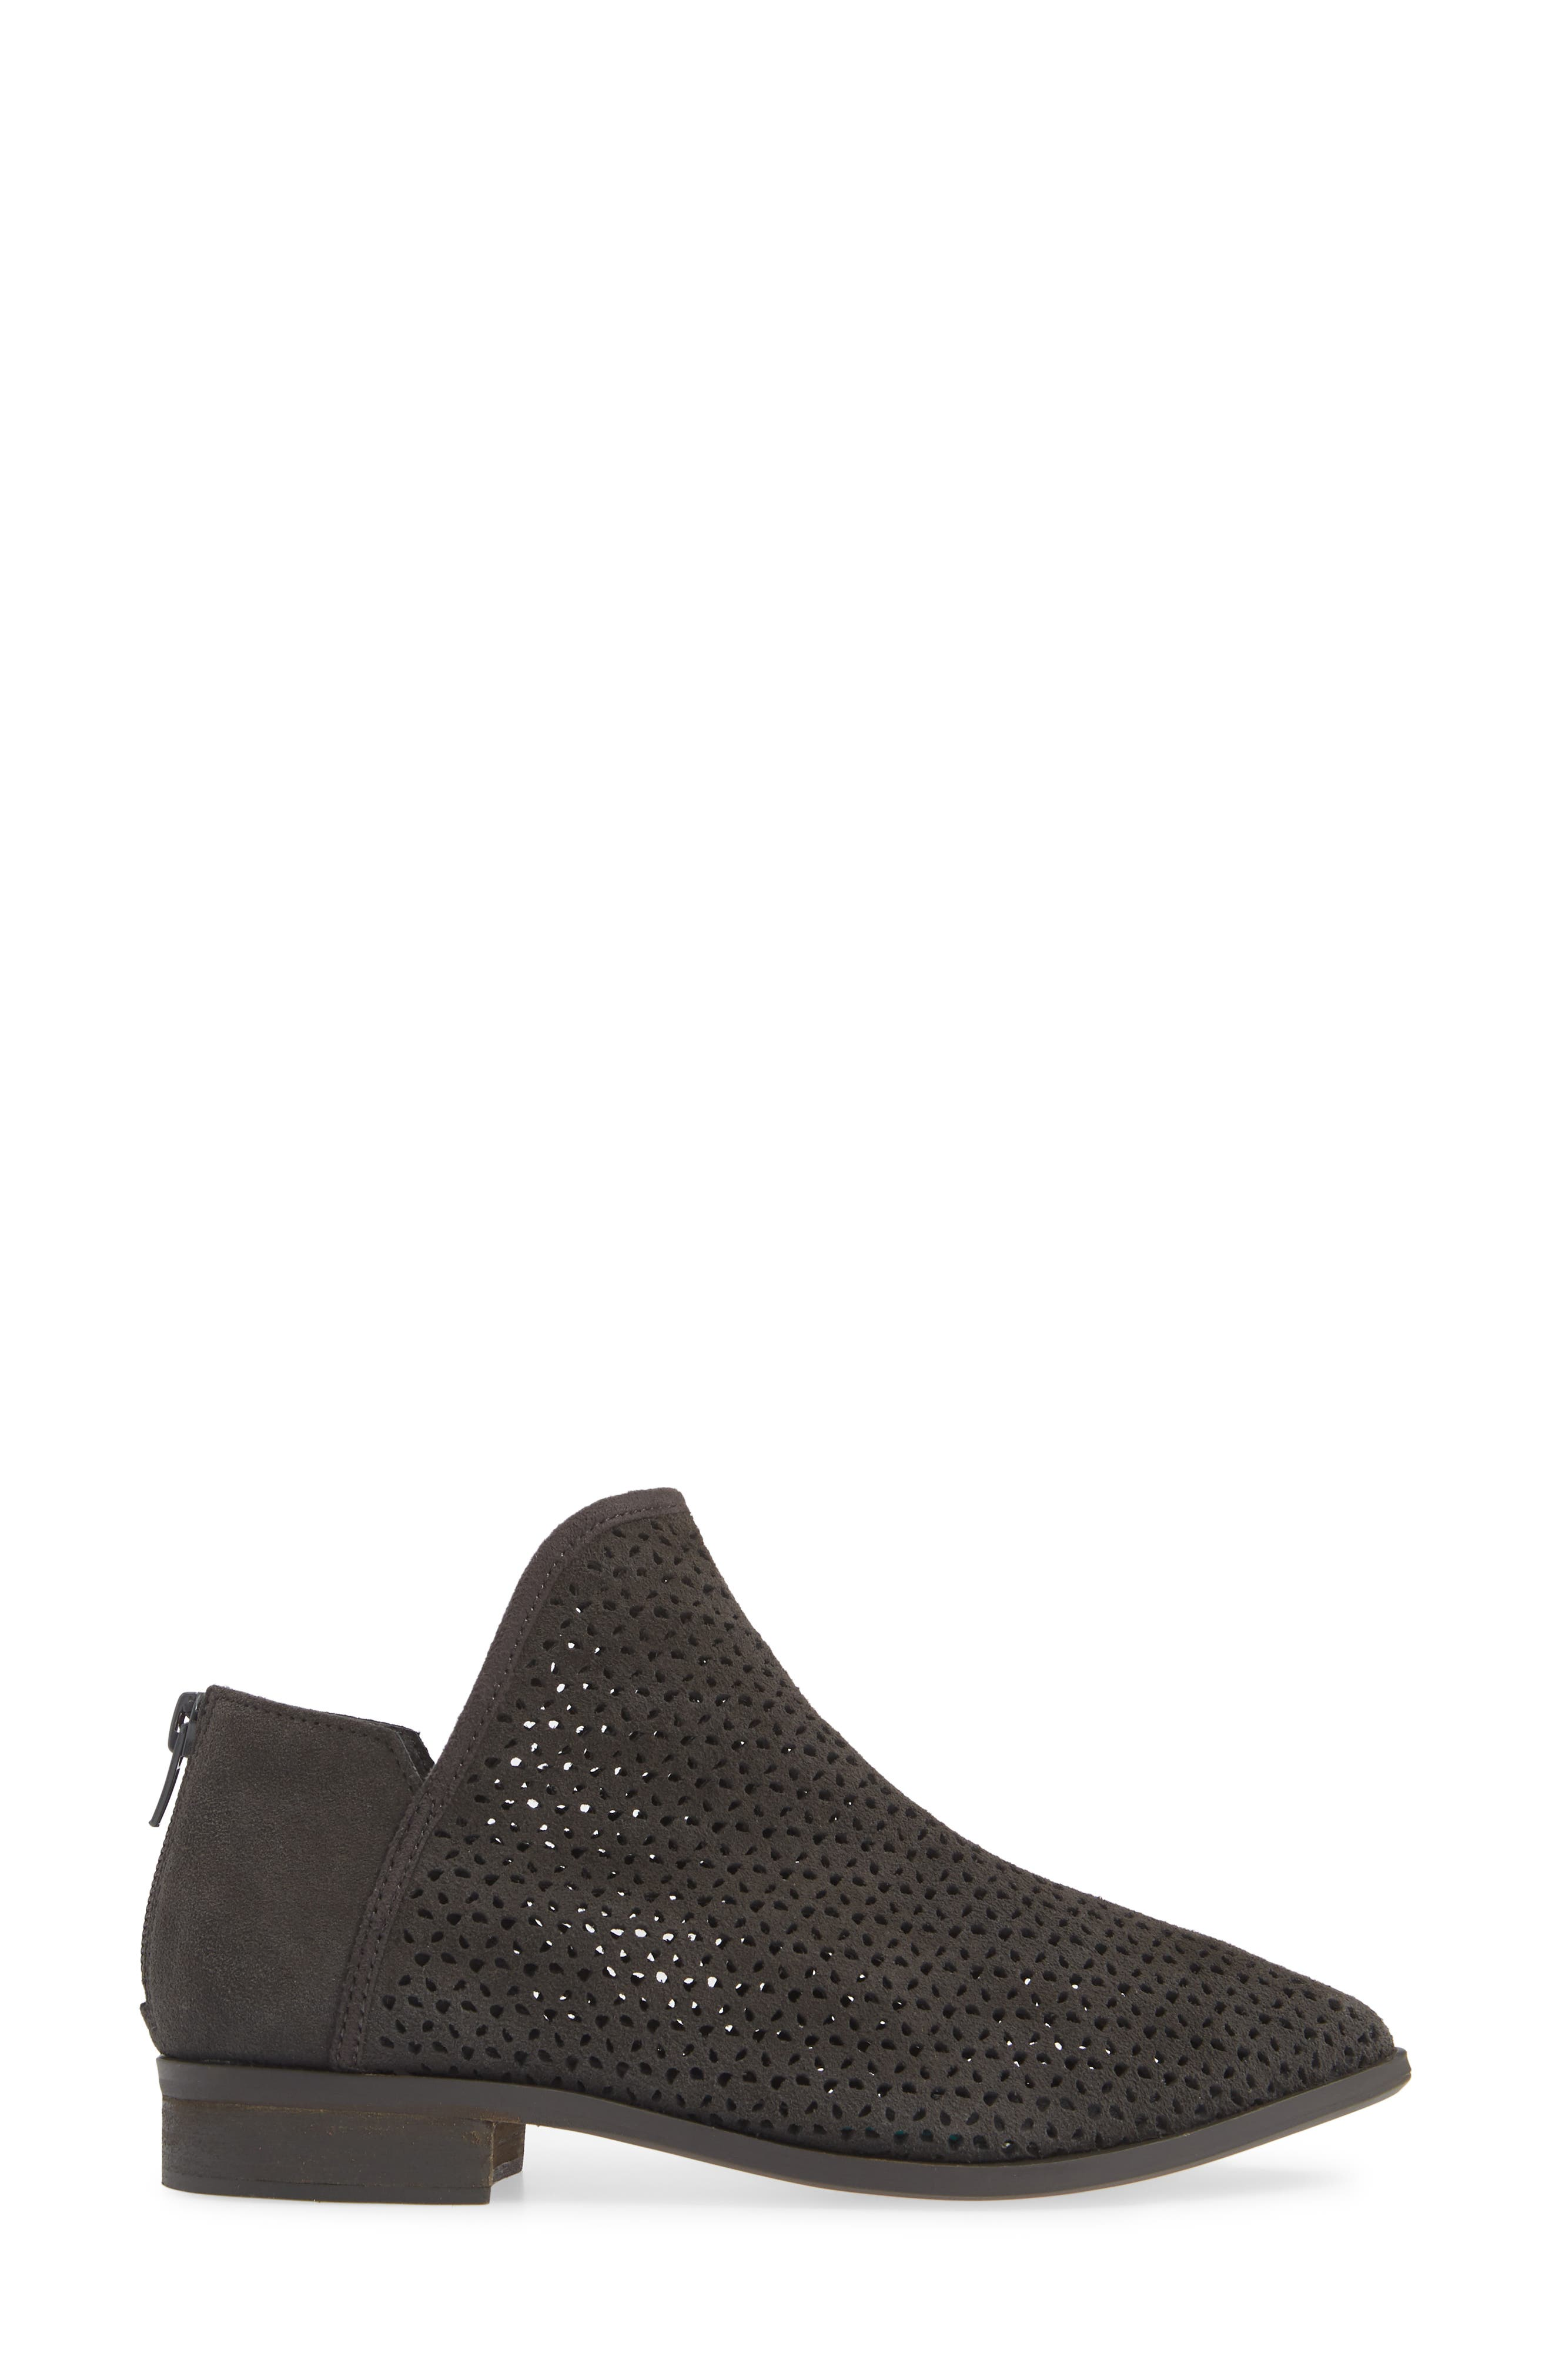 KELSI DAGGER BROOKLYN, Alley Perforated Bootie, Alternate thumbnail 3, color, CHARCOAL